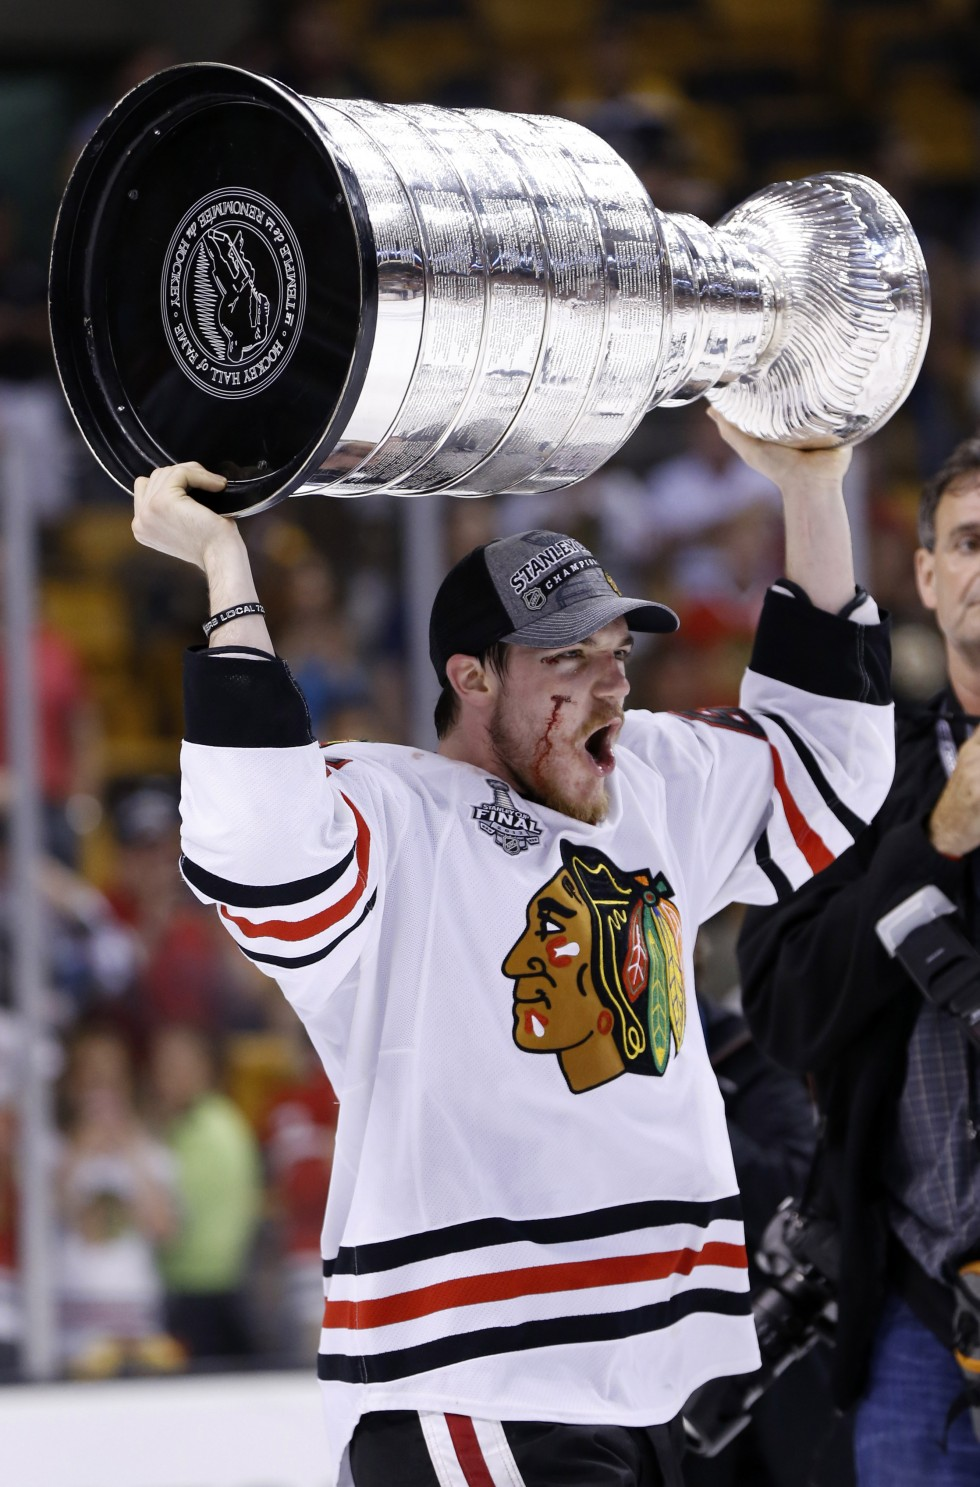 Jun 24, 2013; Boston, MA, USA; Chicago Blackhawks center Andrew Shaw hoists the Stanley Cup after game six of the 2013 Stanley Cup Final against the Boston Bruins at TD Garden. The Blackhawks won 3-2 to win the series four games to two. Mandatory Credit: Greg M. Cooper-USA TODAY Sports